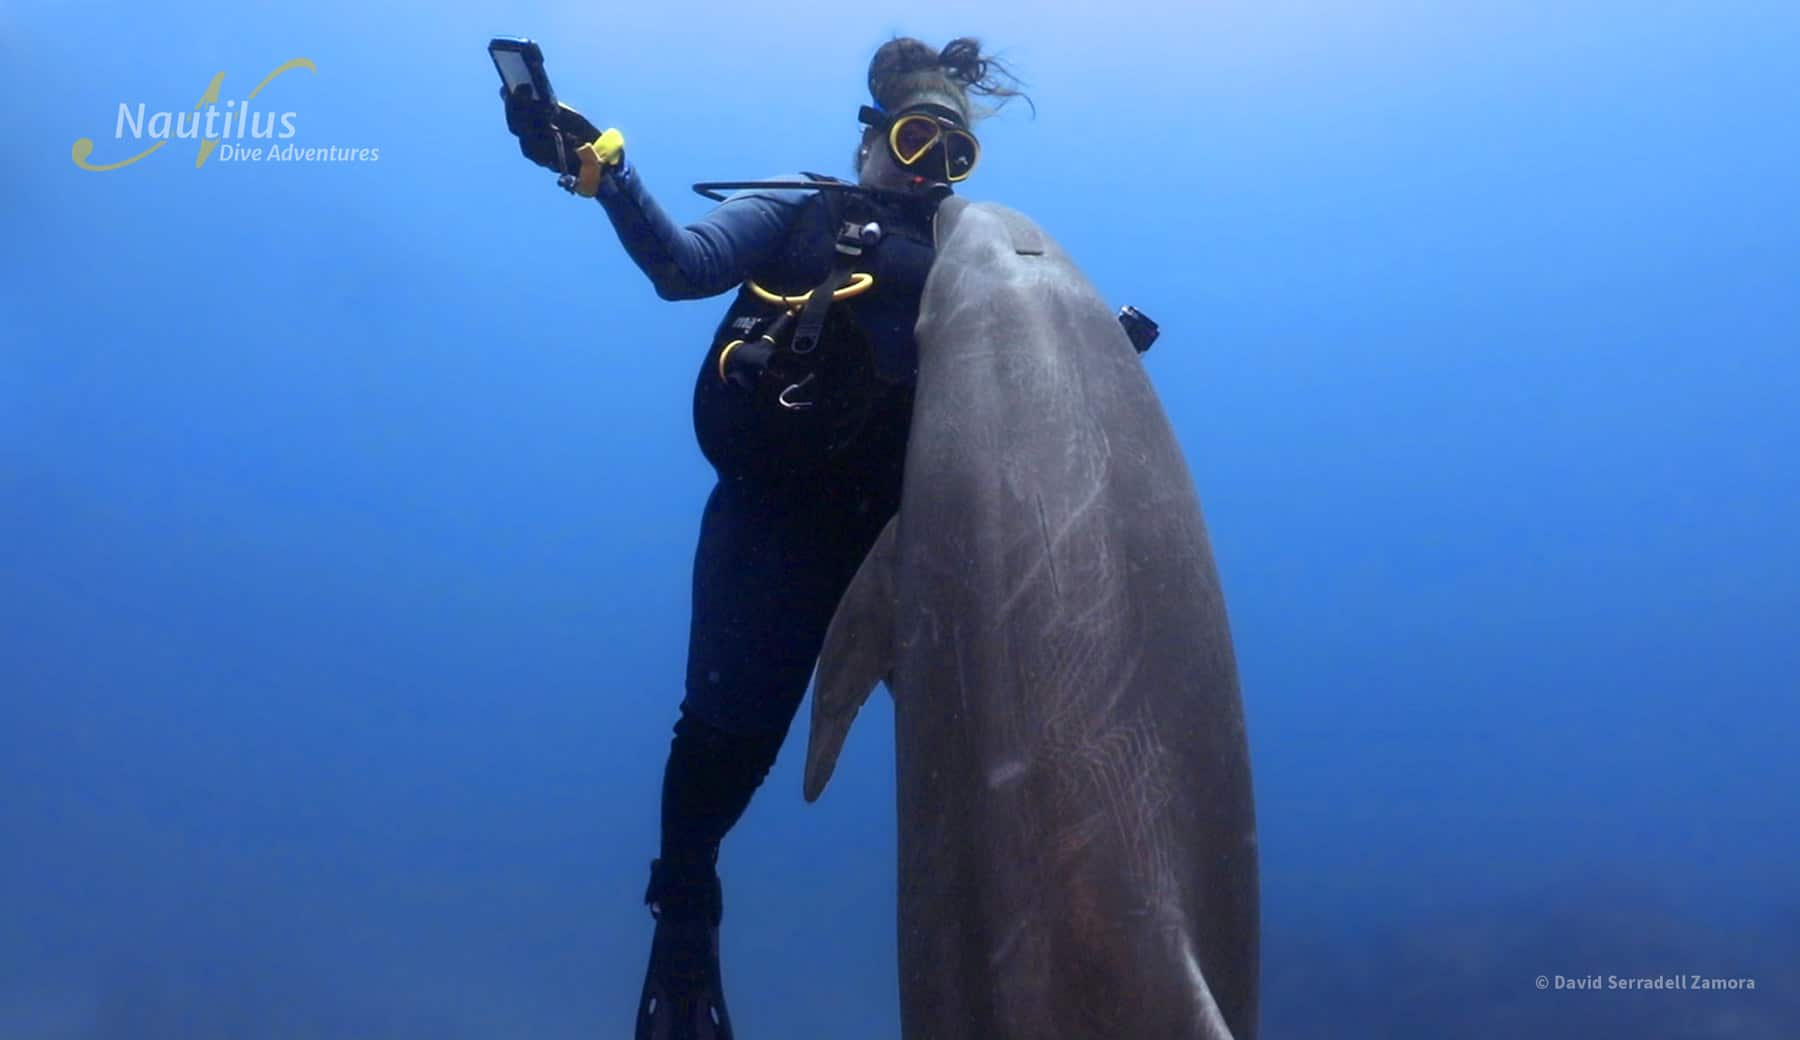 Friendly dolphin interact with diver